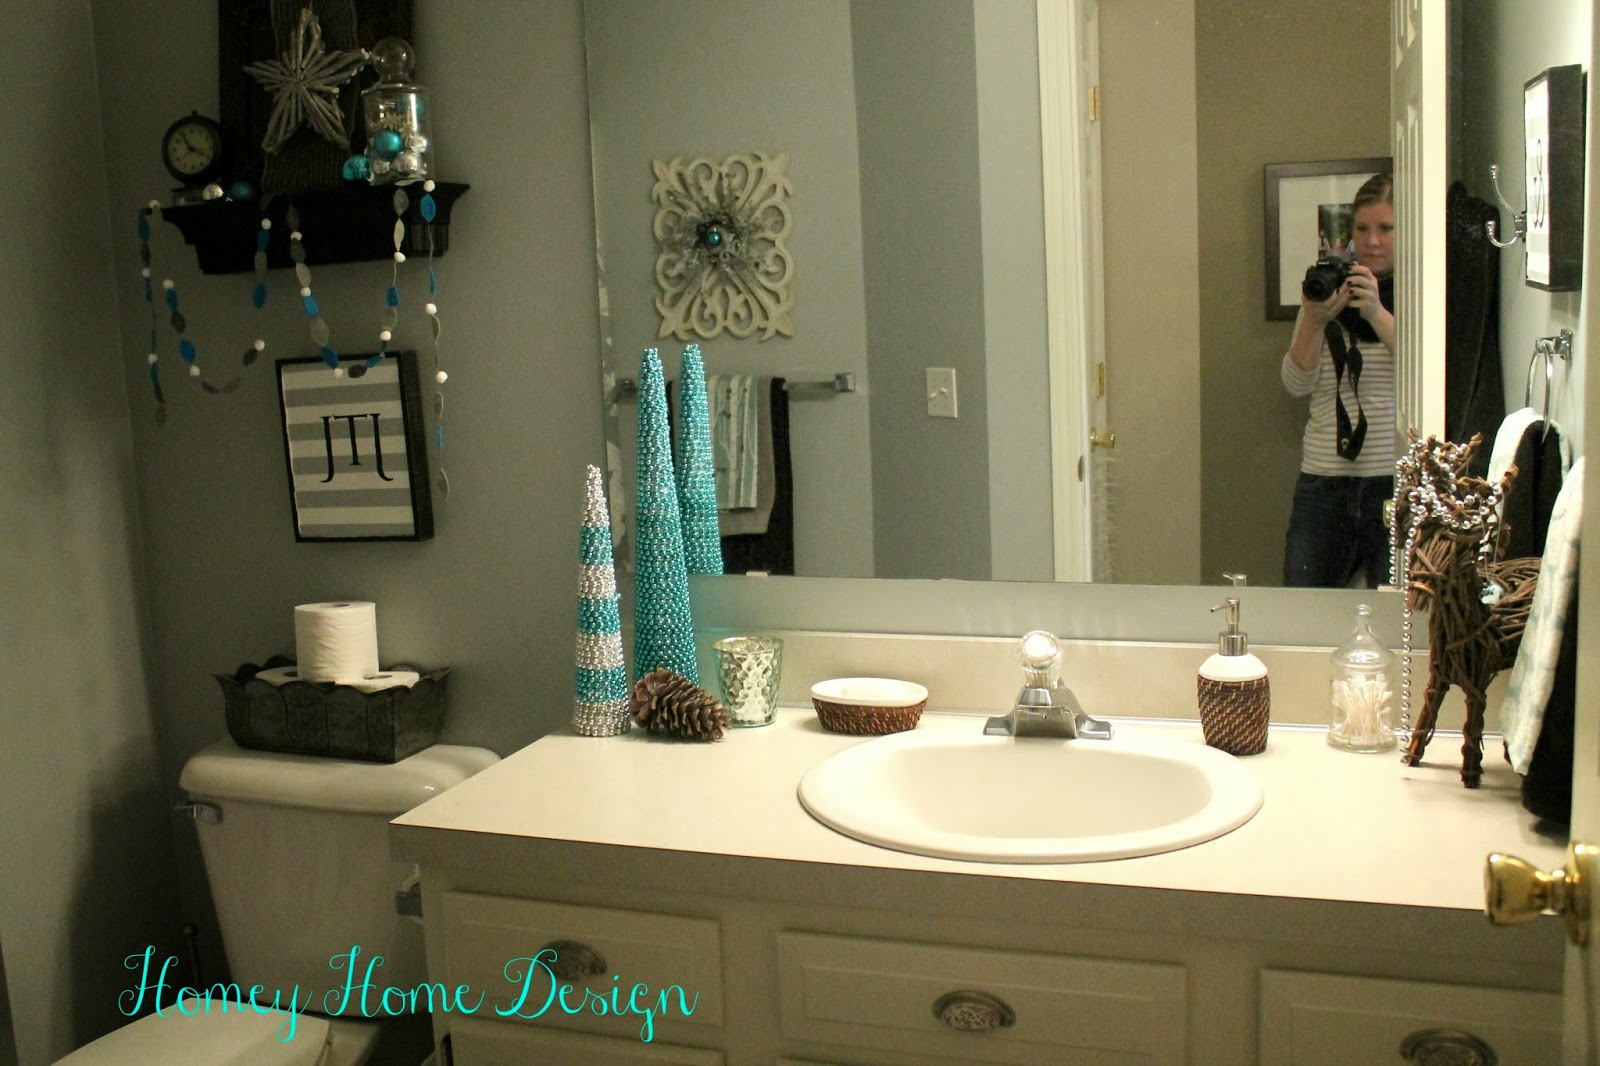 Homey home design bathroom christmas ideas for Bathroom home ideas